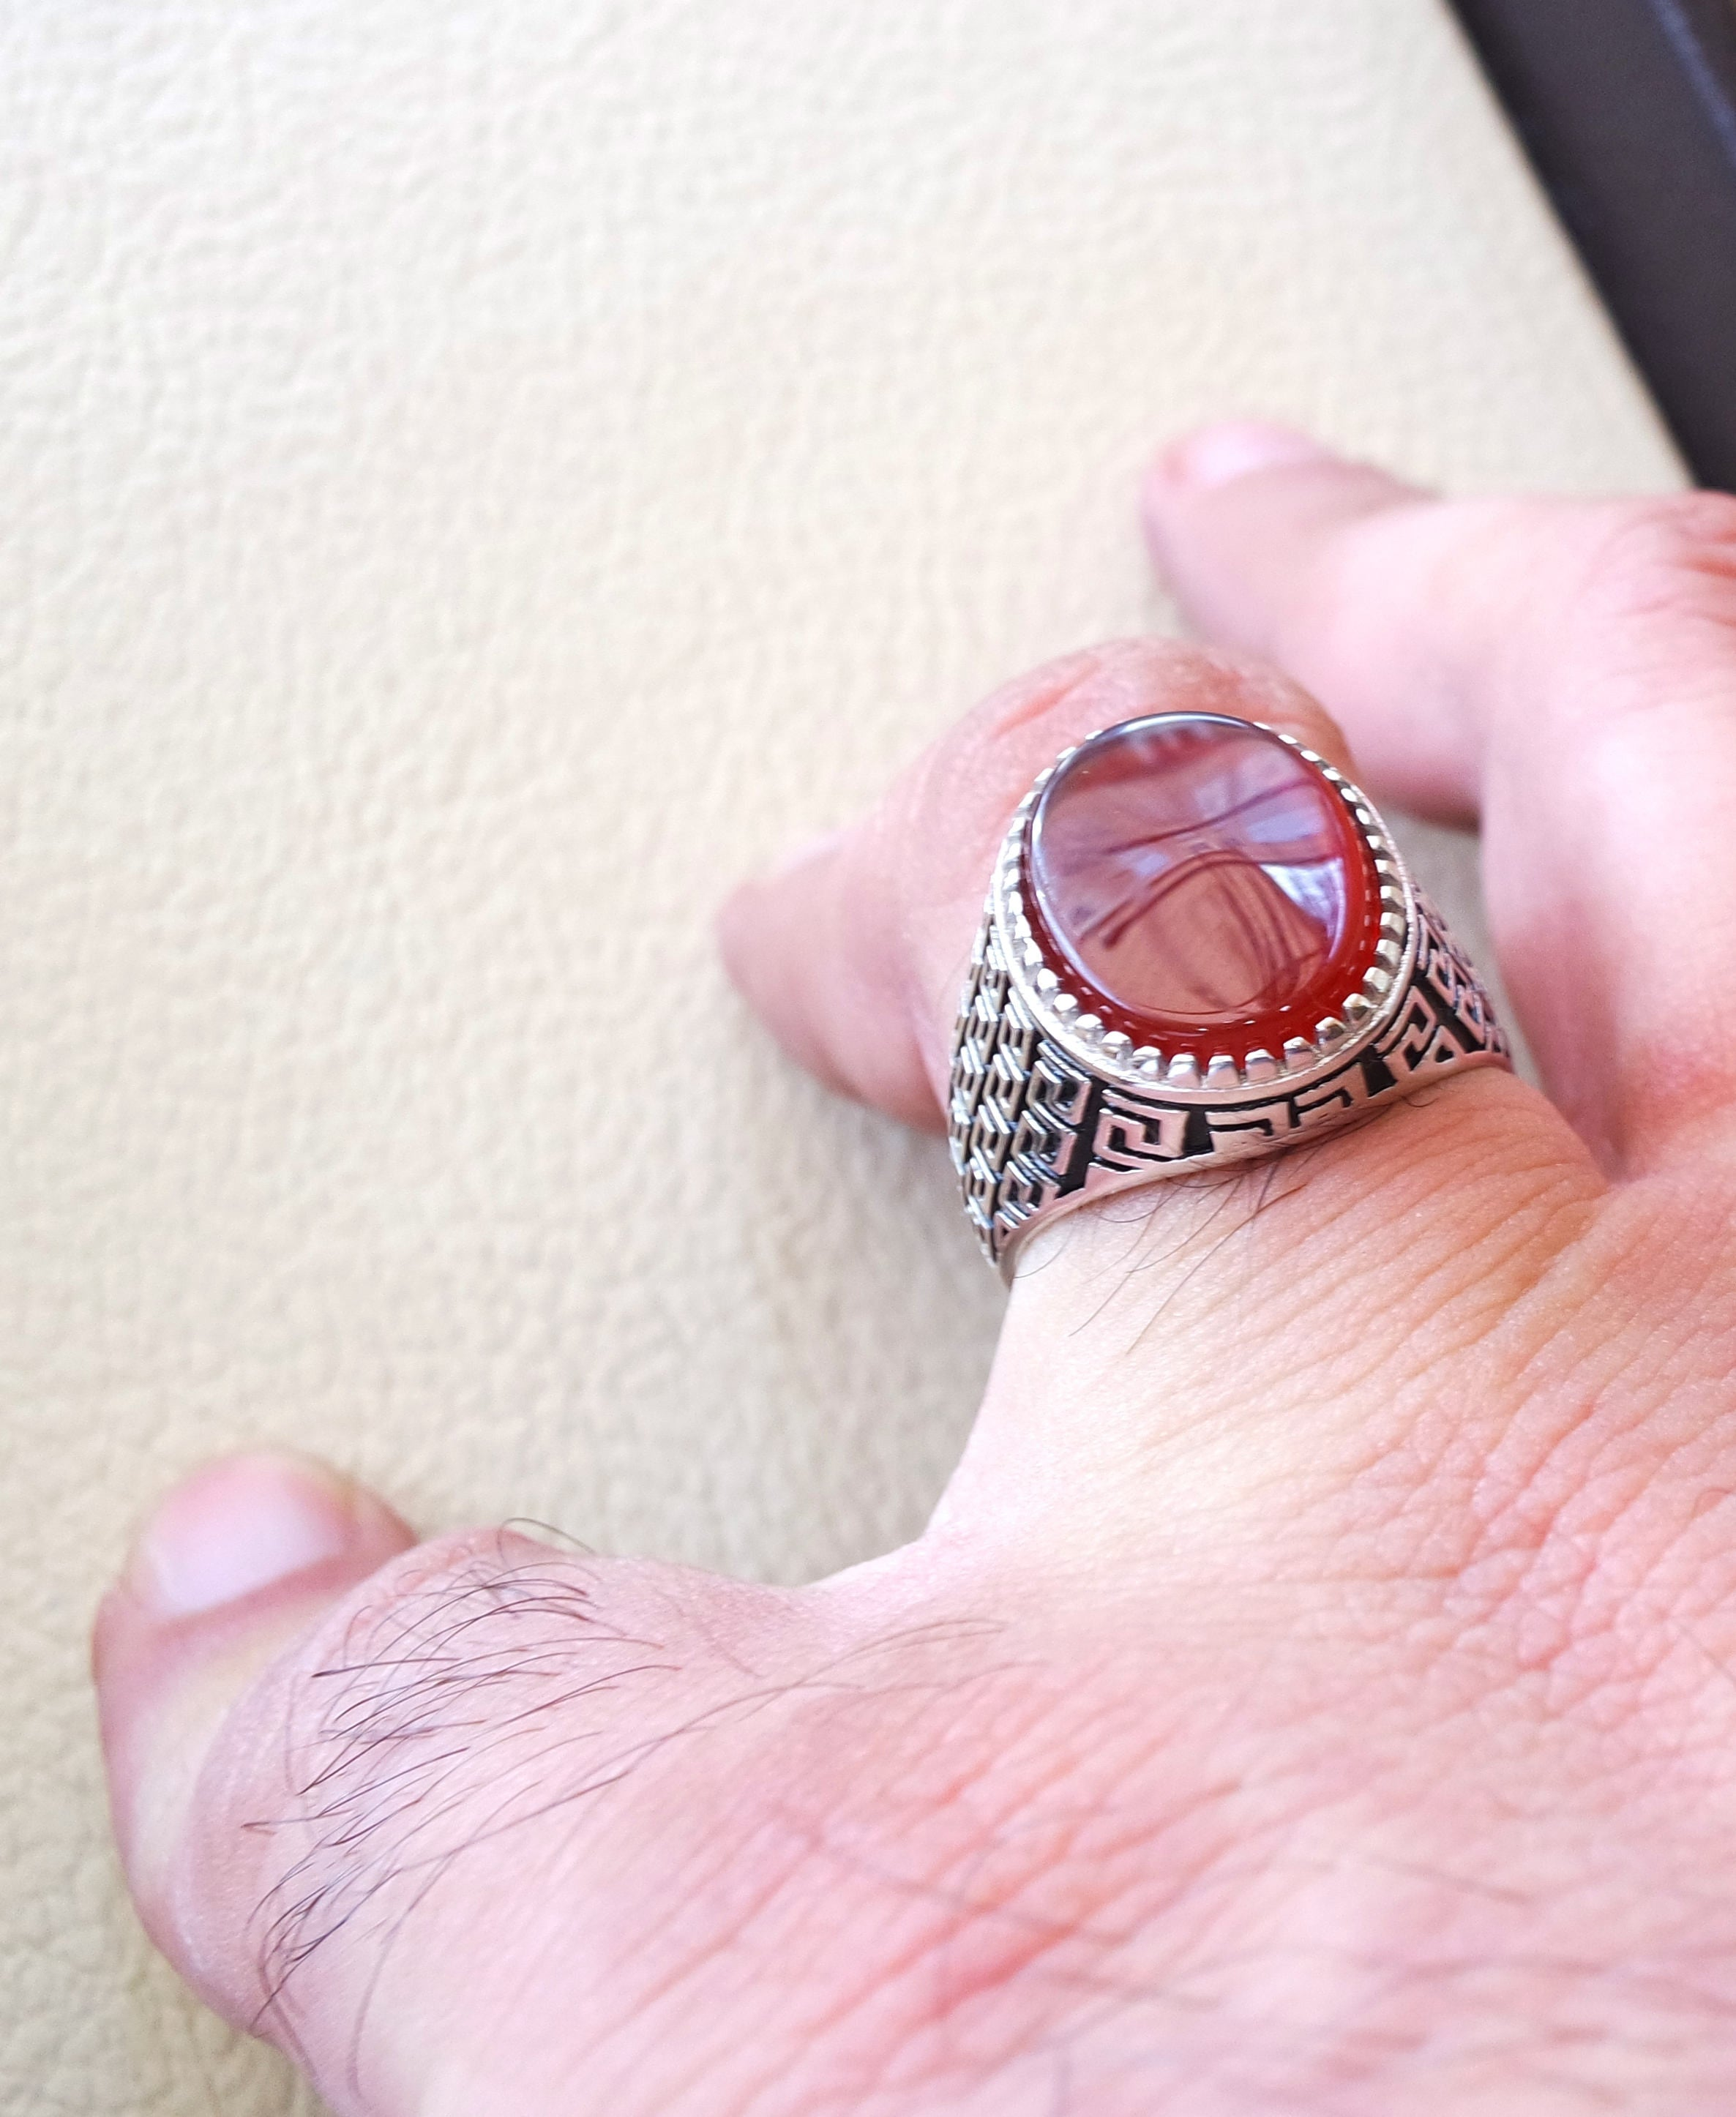 man ring sterling silver 925 aqeeq natural flat agate carnelian semi precious stone oval red cabochon gem arabic middle eastern turkey style